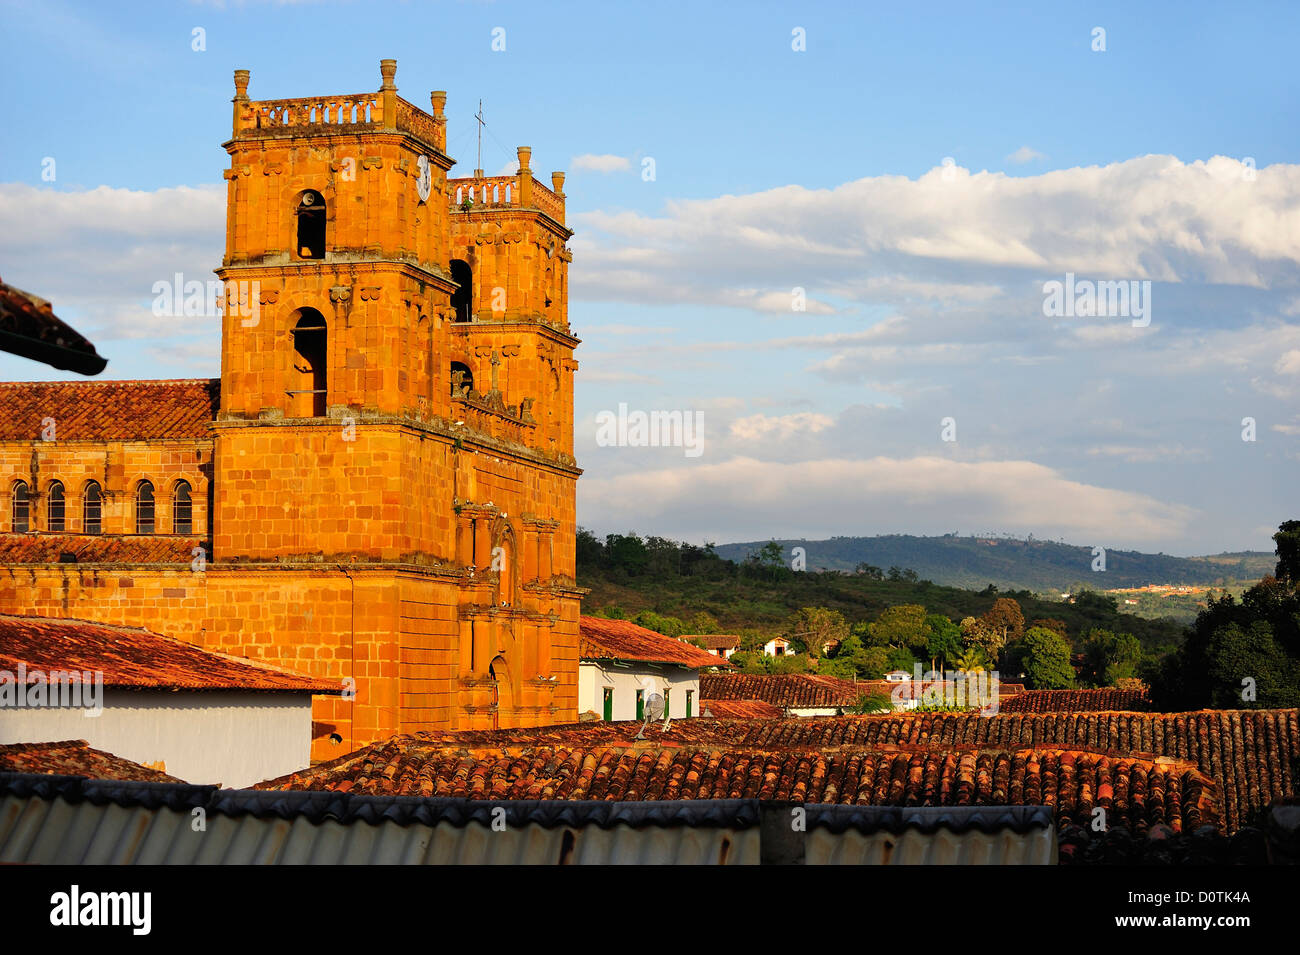 Templo, church, brick building, colonial, Town, Barichara, Colombia, South America - Stock Image